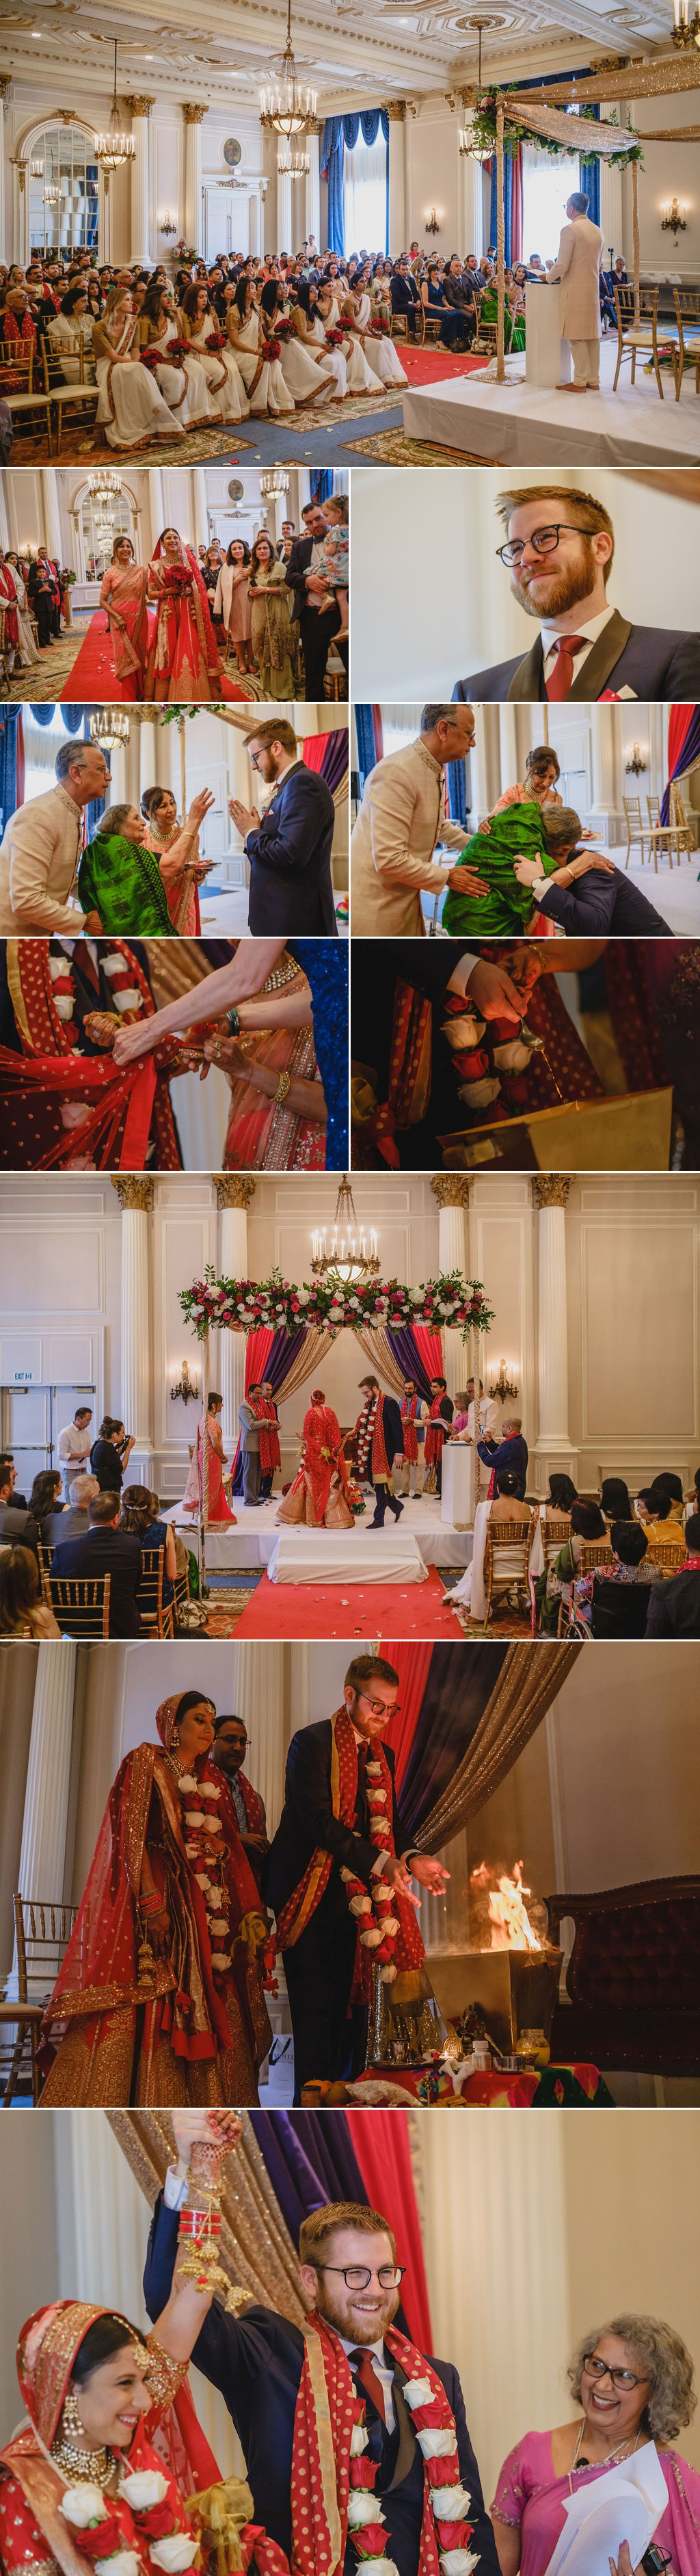 a hindu wedding ceremony at the chateau laurier in ottawa